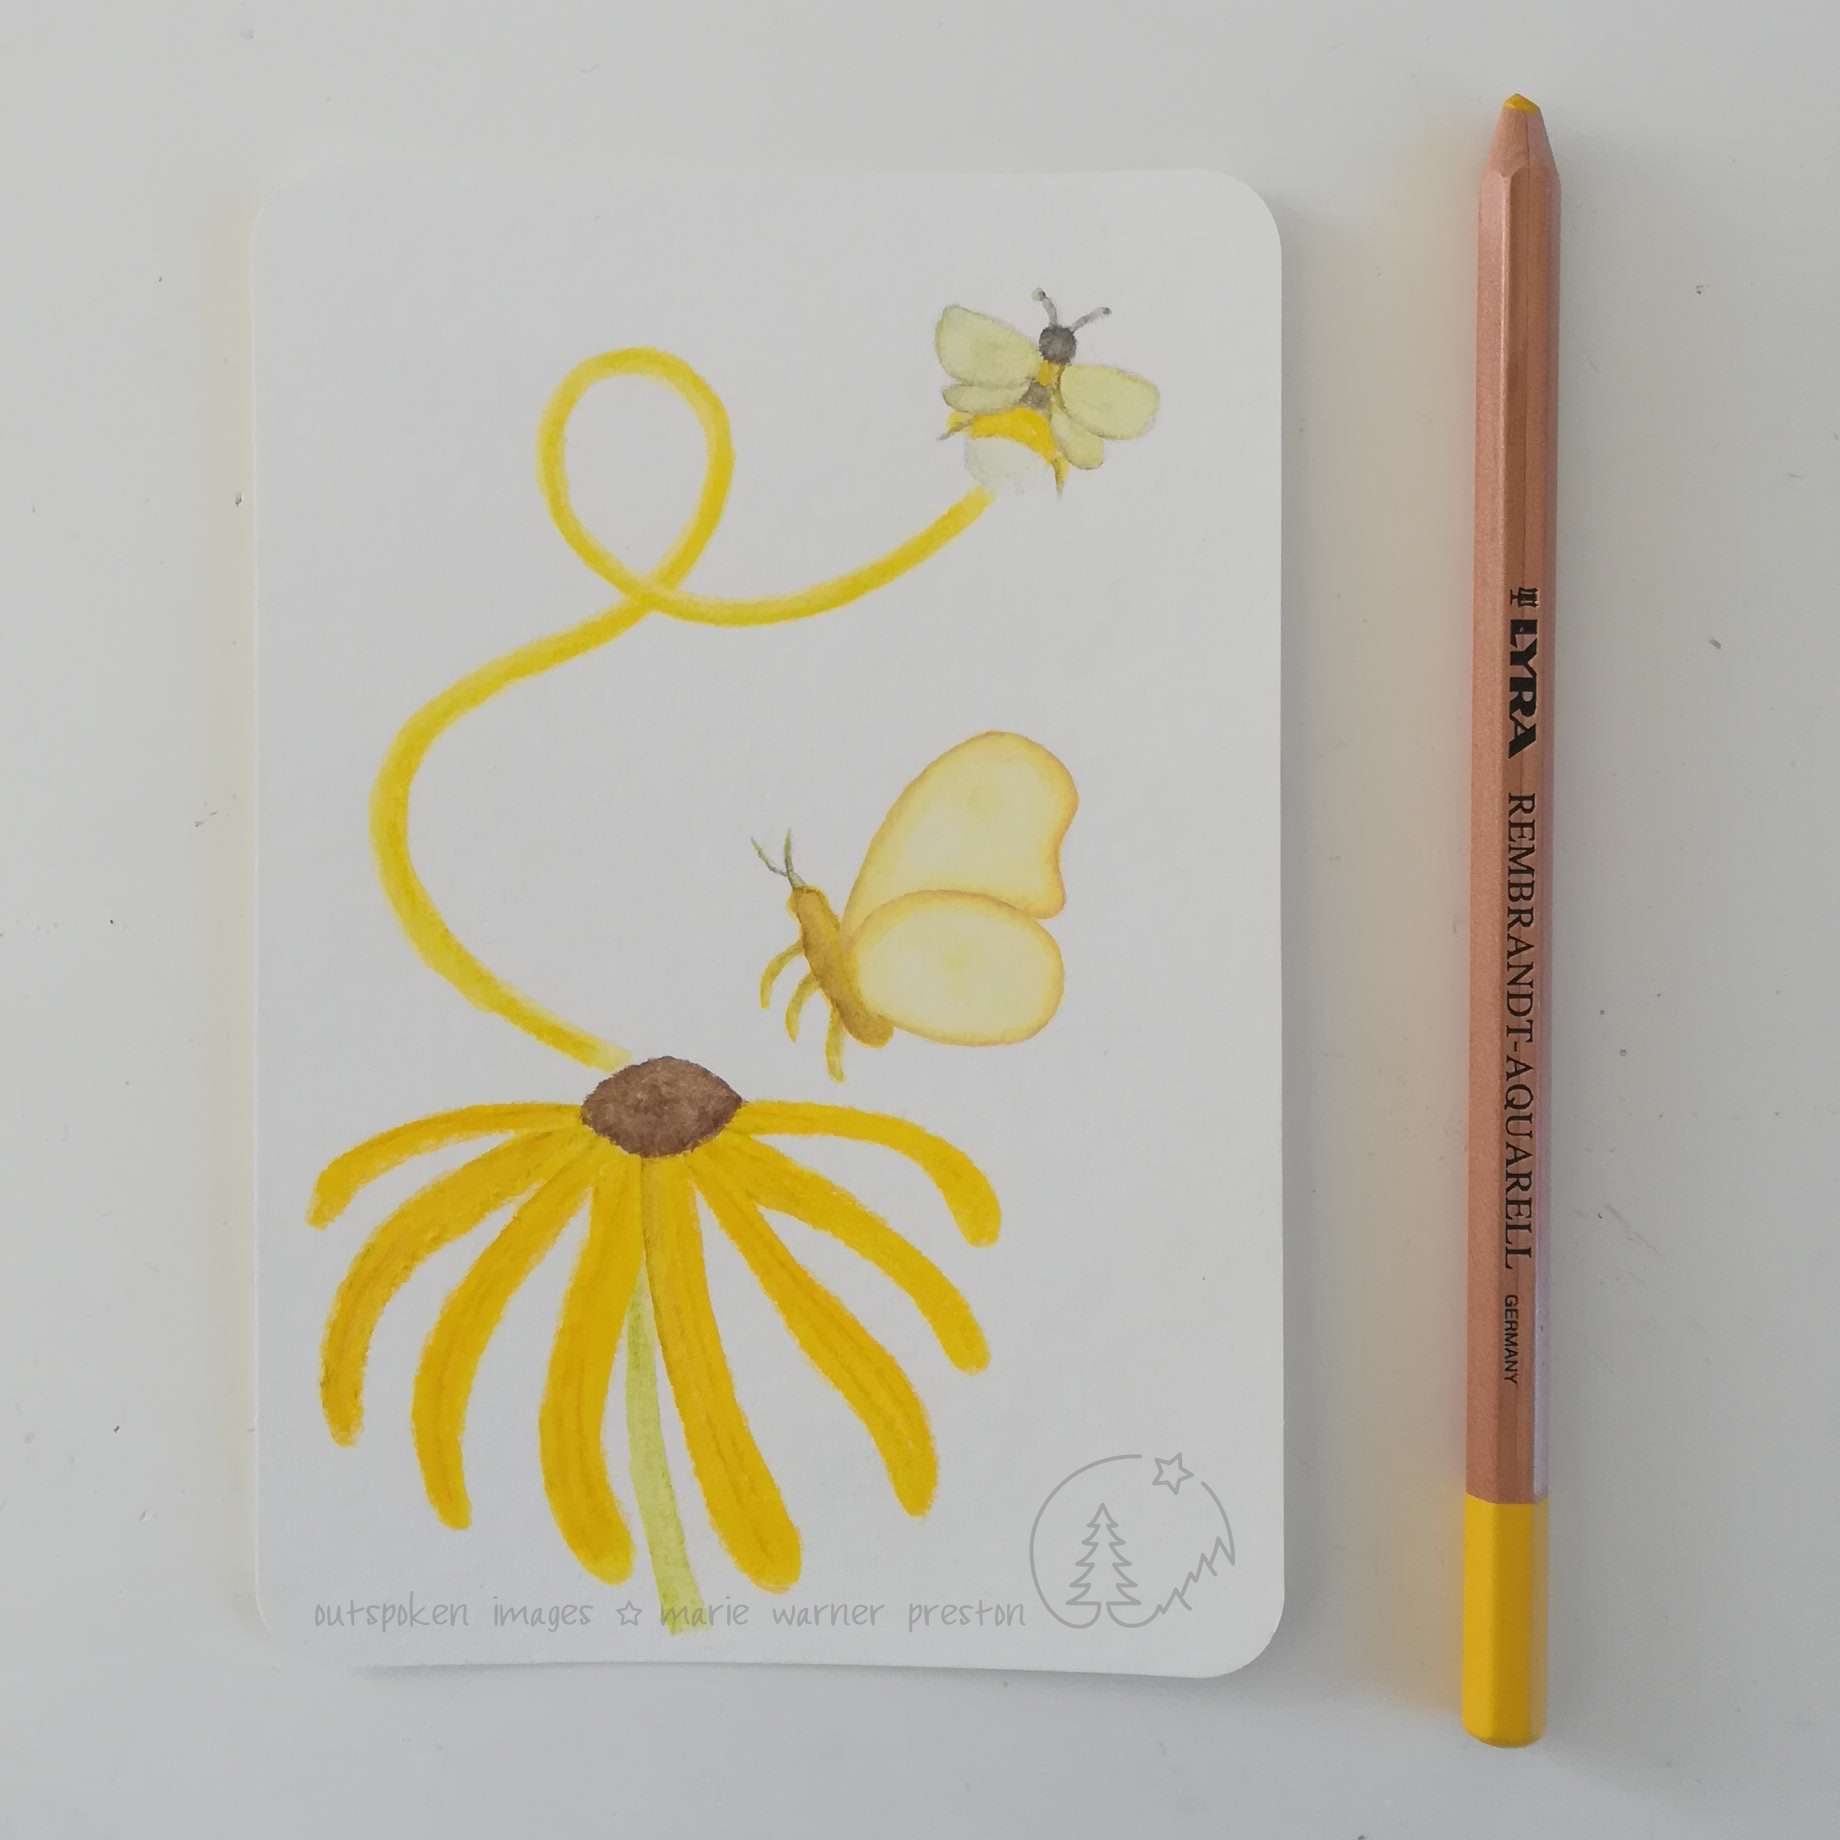 «Yellow Joy». Yellow flower with yellow butterfly and yellow swoop leading up to a yellow bee. ©2021 Outspoken Images by Marie Warner Preston